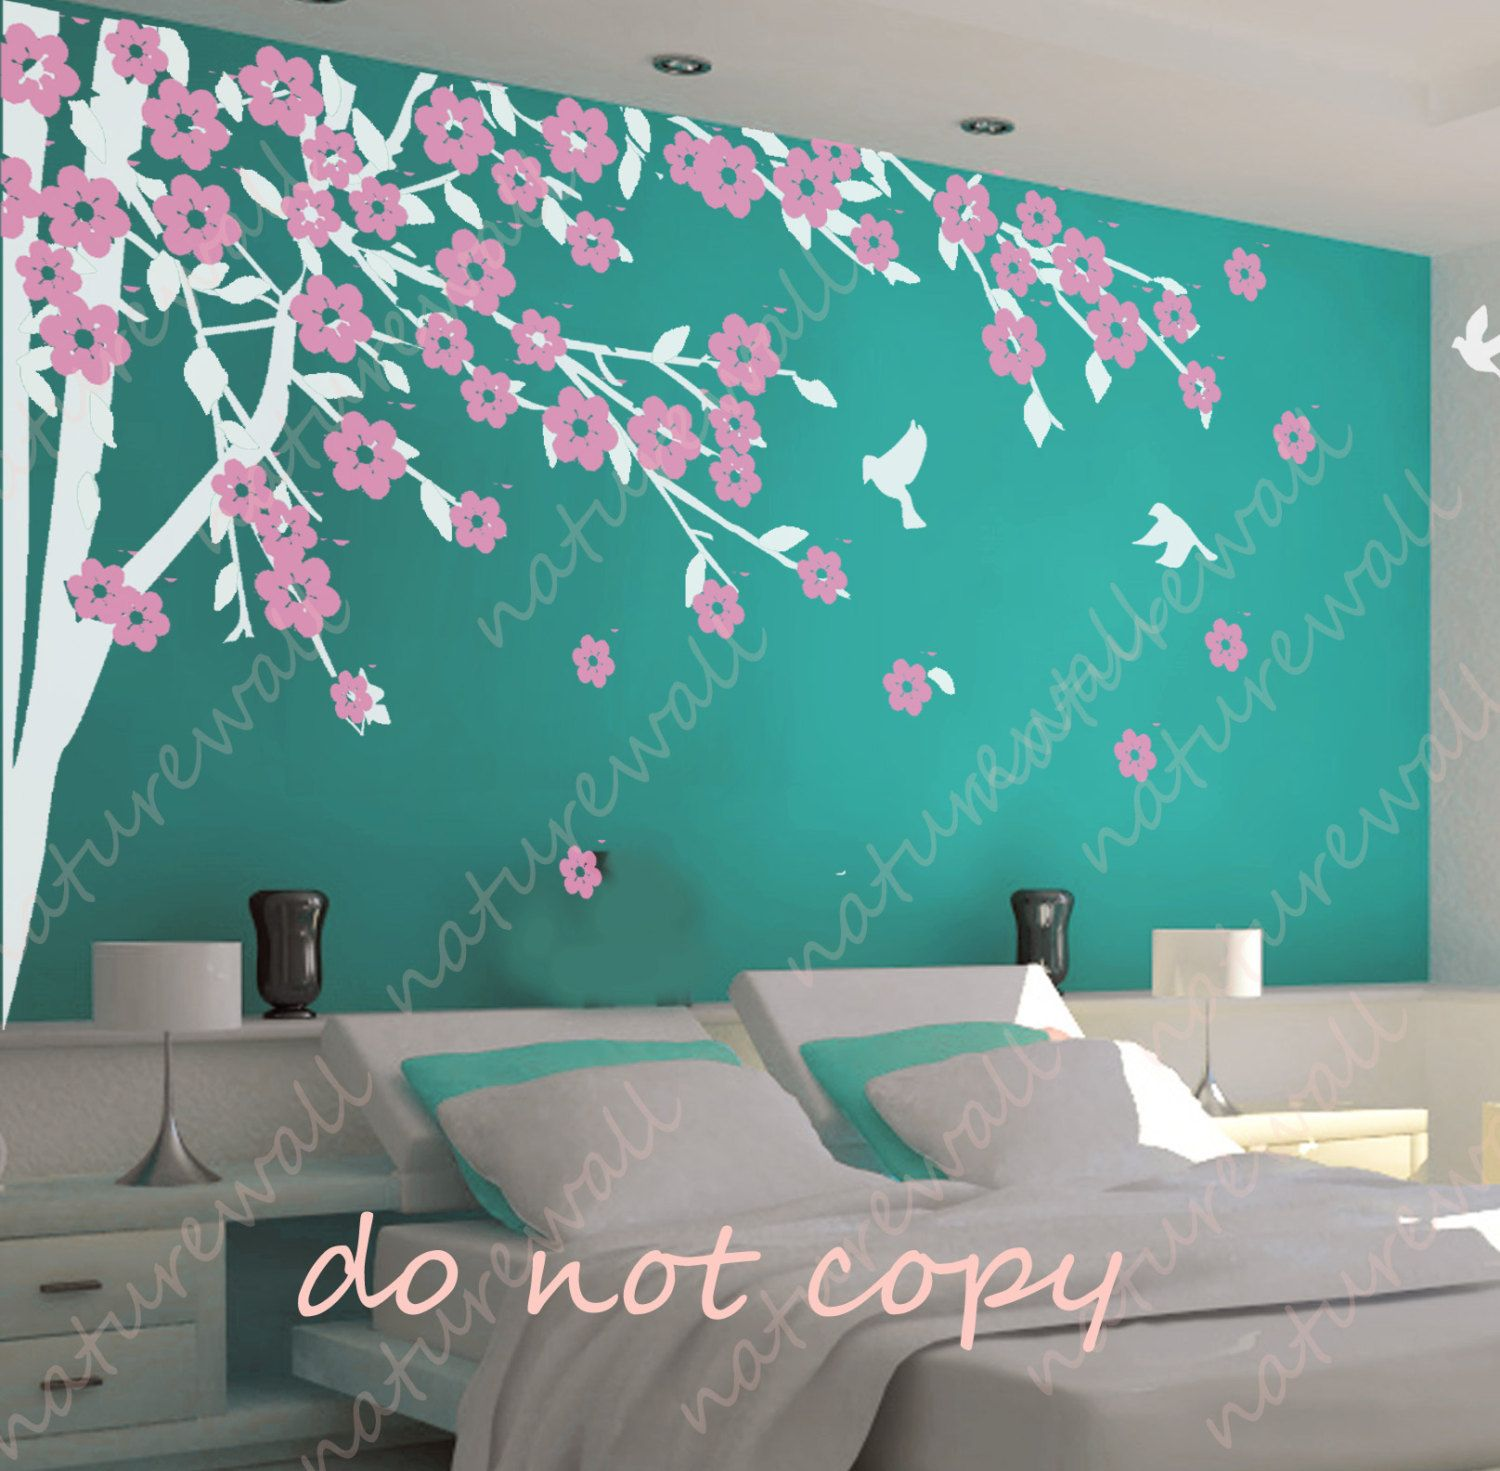 Cherry Blossom Wall Decals Tree Decals Baby Nursery By NatureWall - Wall stickers for girlspink cherry blossom tree with birds wall stickers girls bedroom